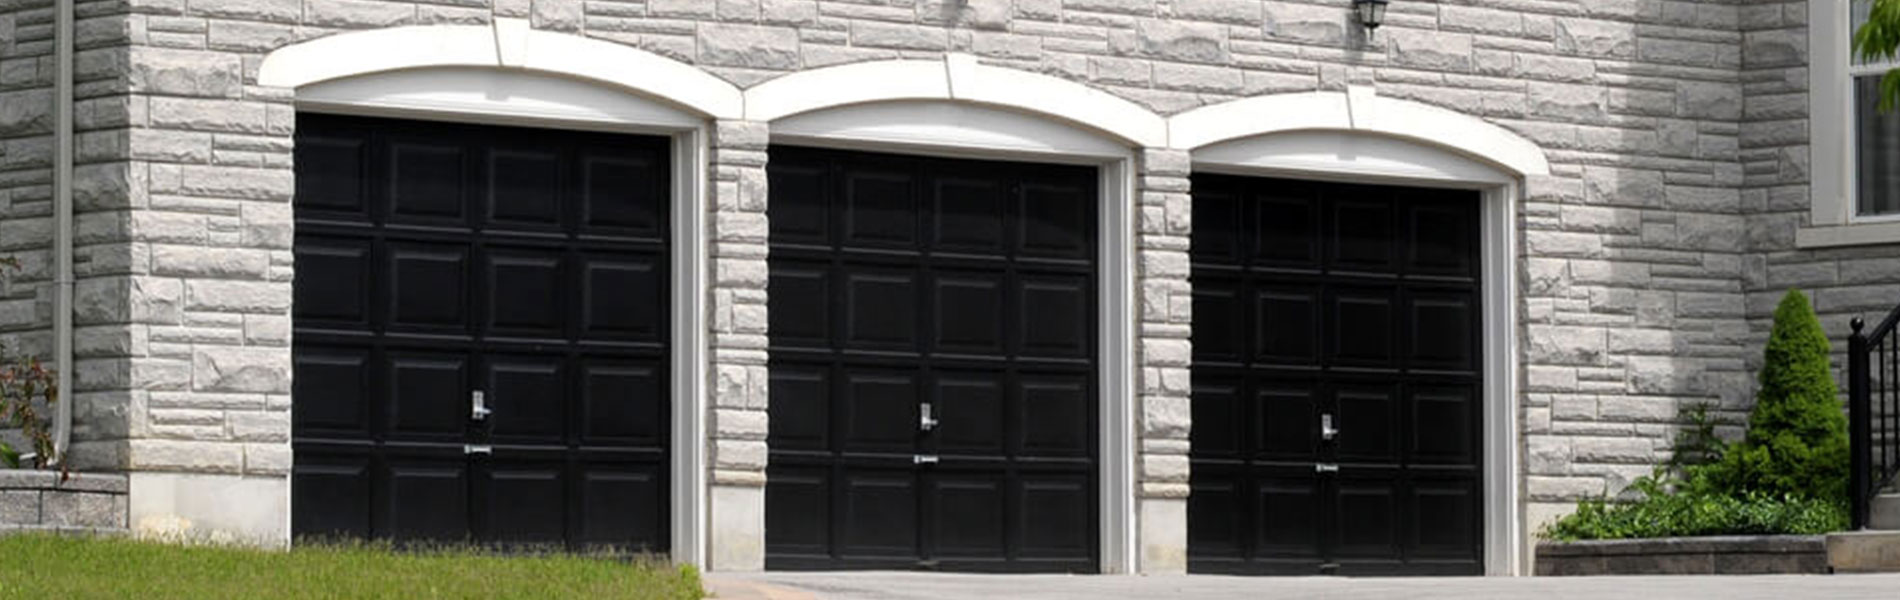 Neighborhood Garage Door Service, Riverside, CA 951-692-4733